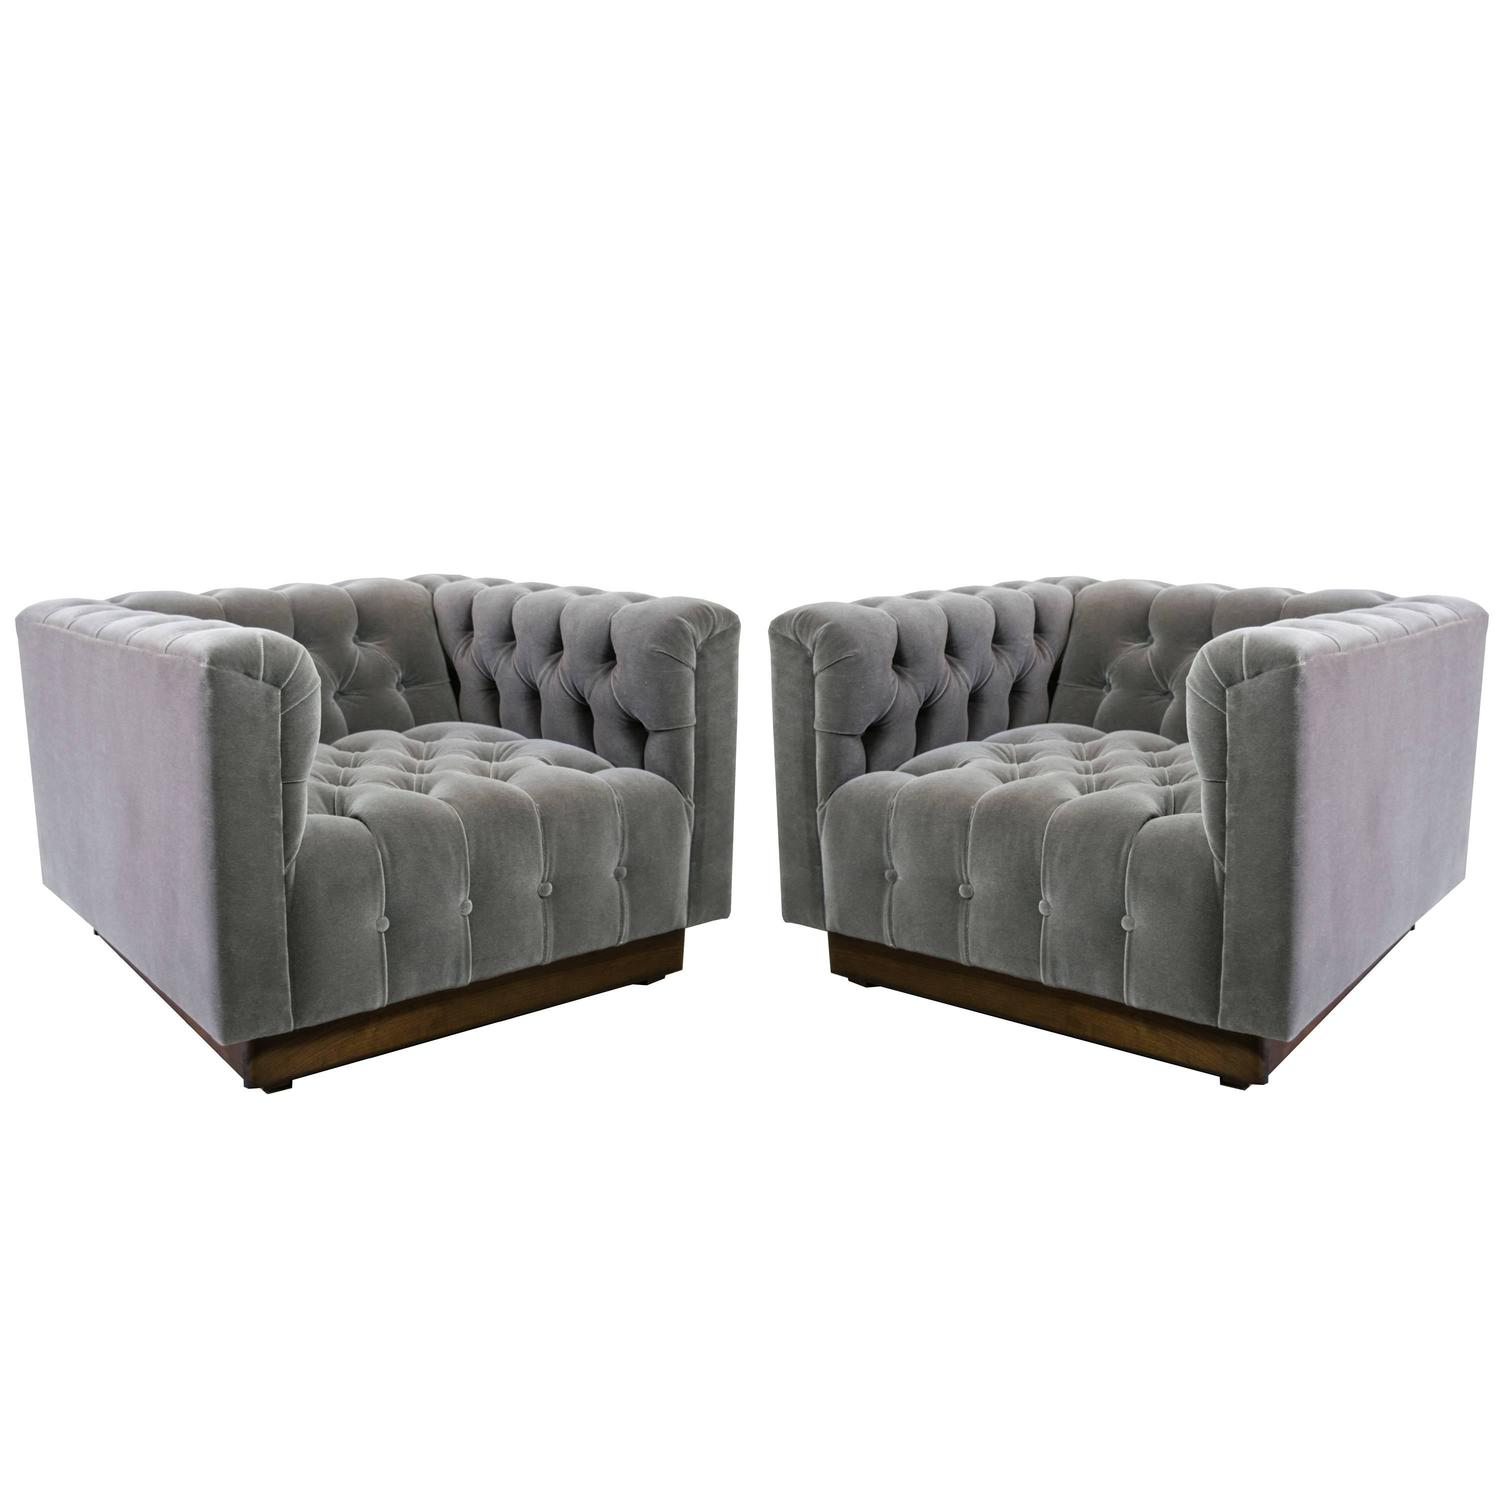 Oversized Milo Baughman Tufted Lounge Chairs in Smoky Gray Mohair For Sale at